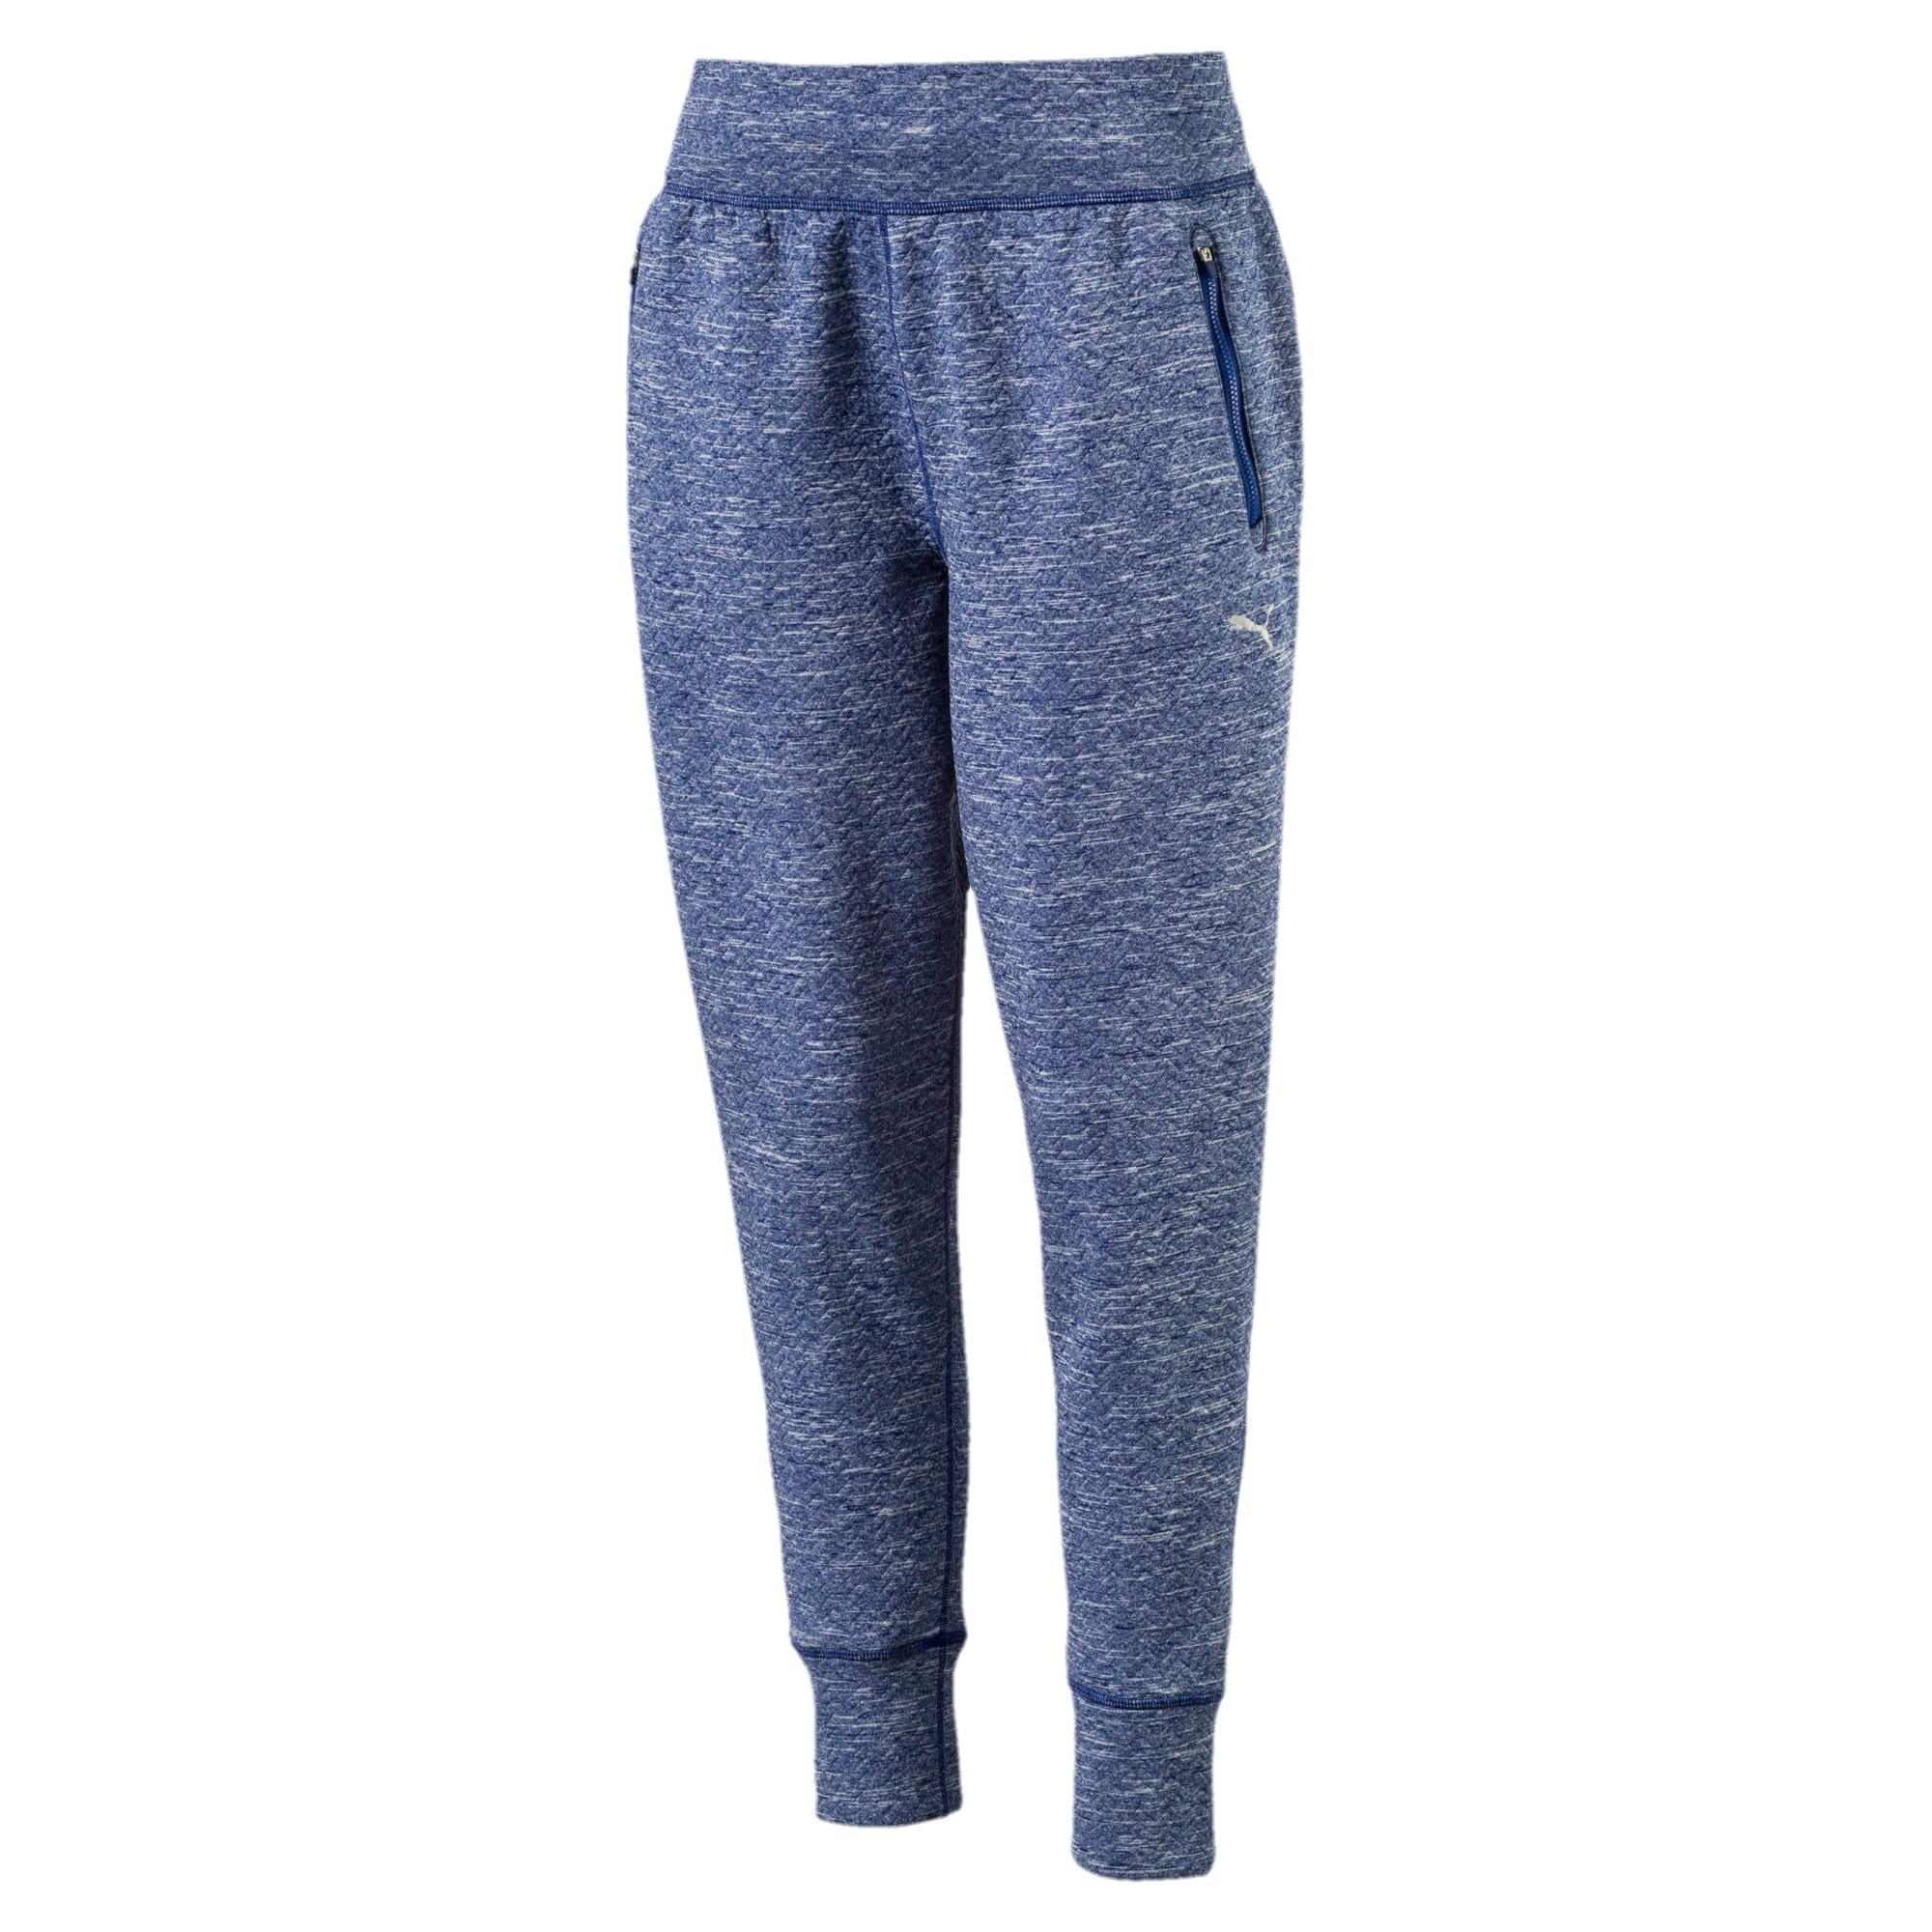 Thumbnail 1 of Active Training Women's Nocturnal Winterized Pants, Blue Depths Heather, medium-IND